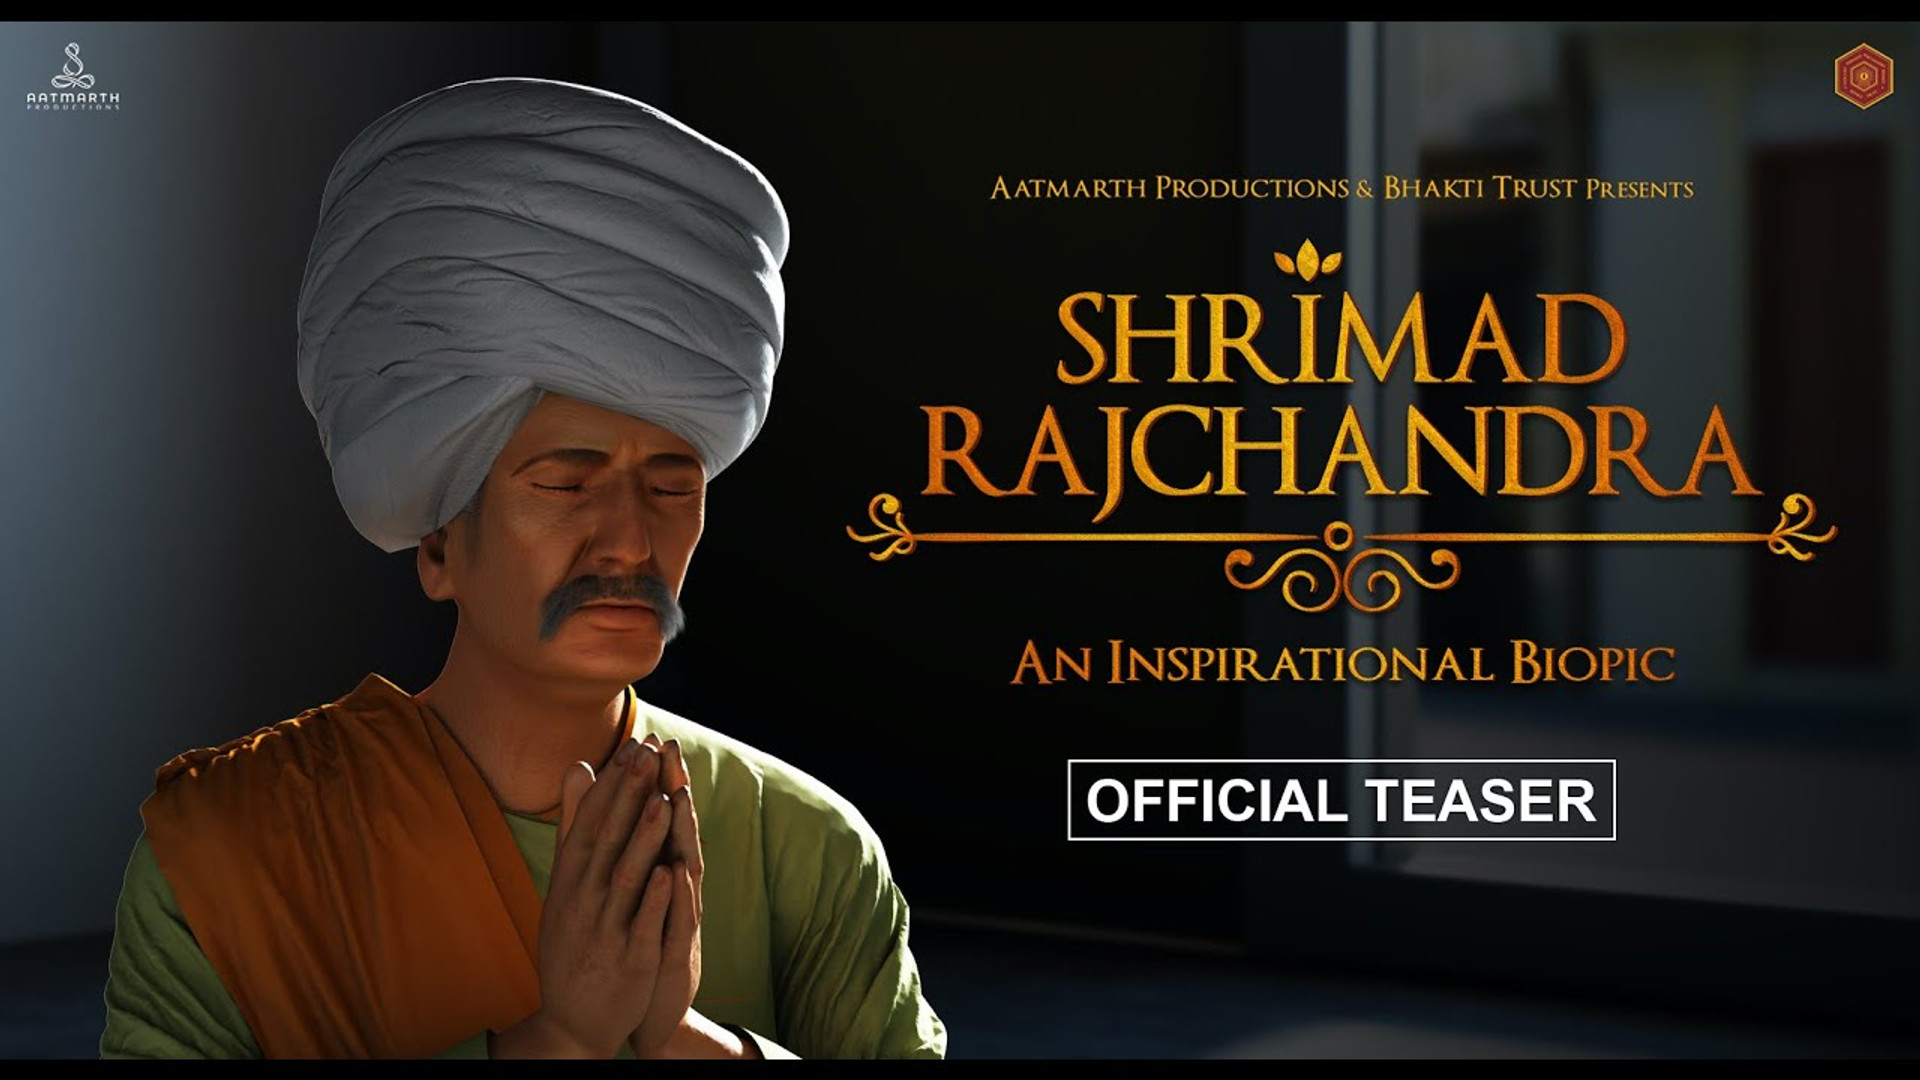 Shrimad Rajchandra Biopic | Official Teaser #1